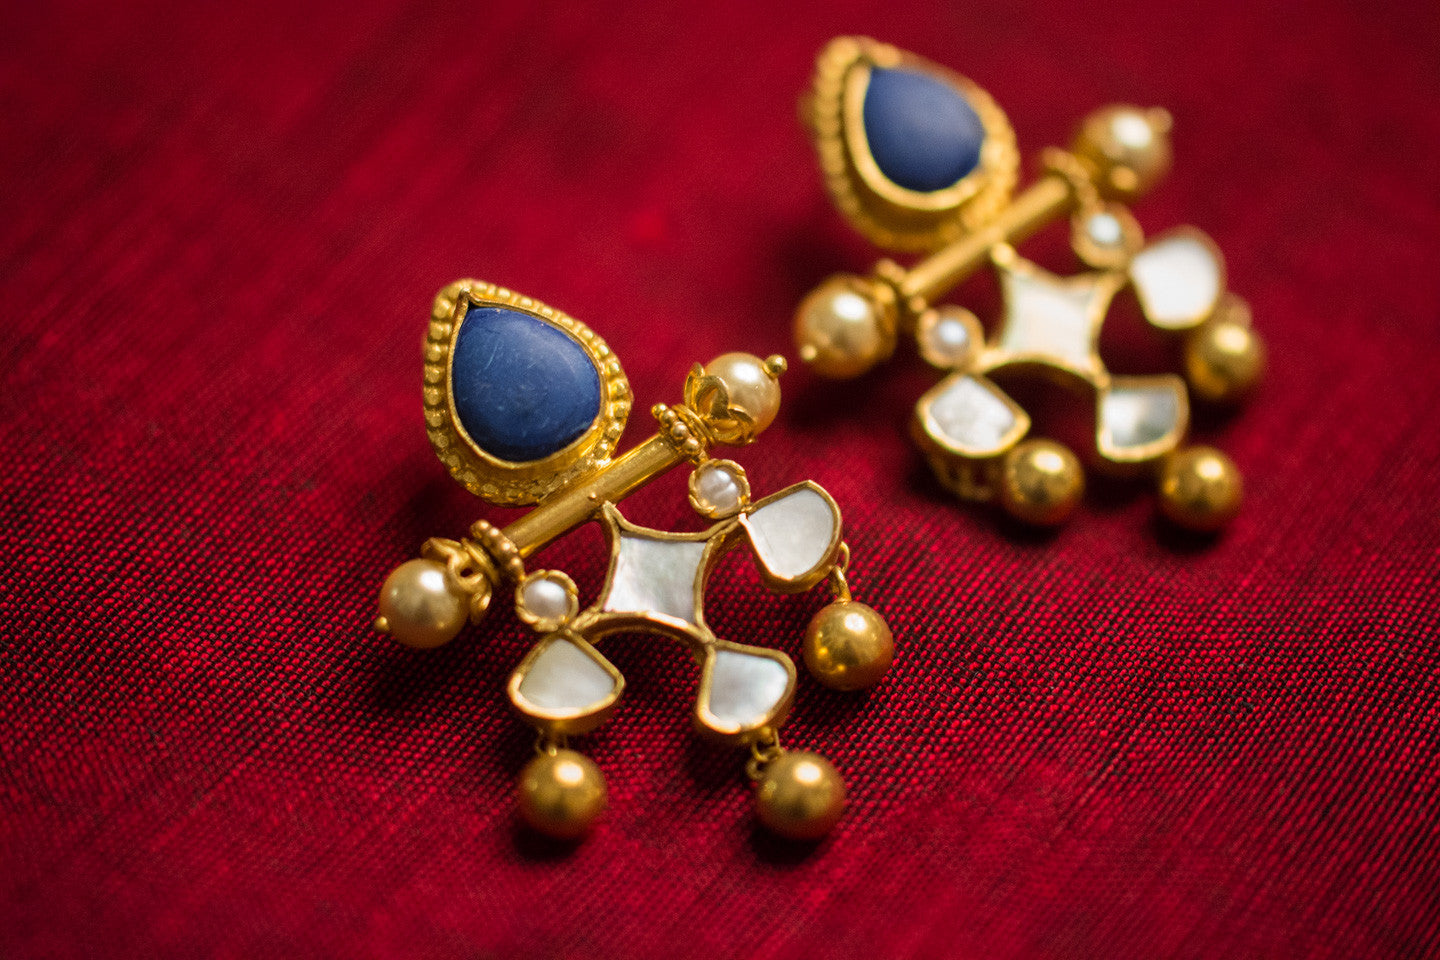 20a465-silver-gold-plated-amrapali-earrings-blue-stone-pearl-glass-alternate-view